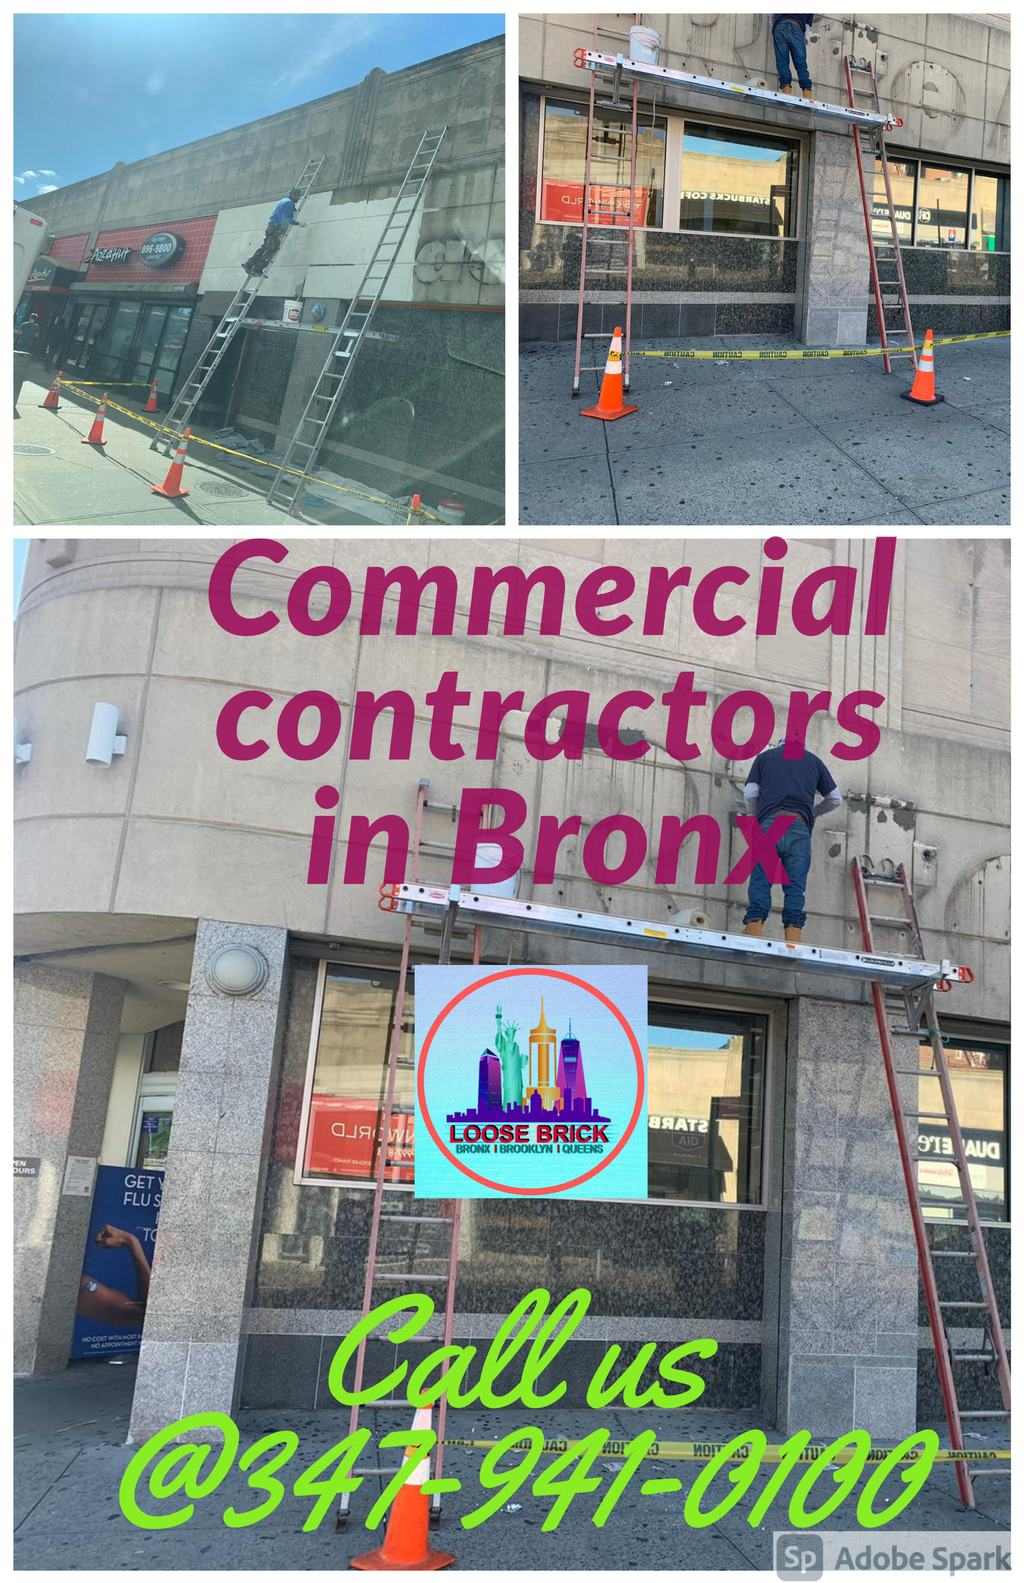 Commercial contractors in Bronx via Loose Brick